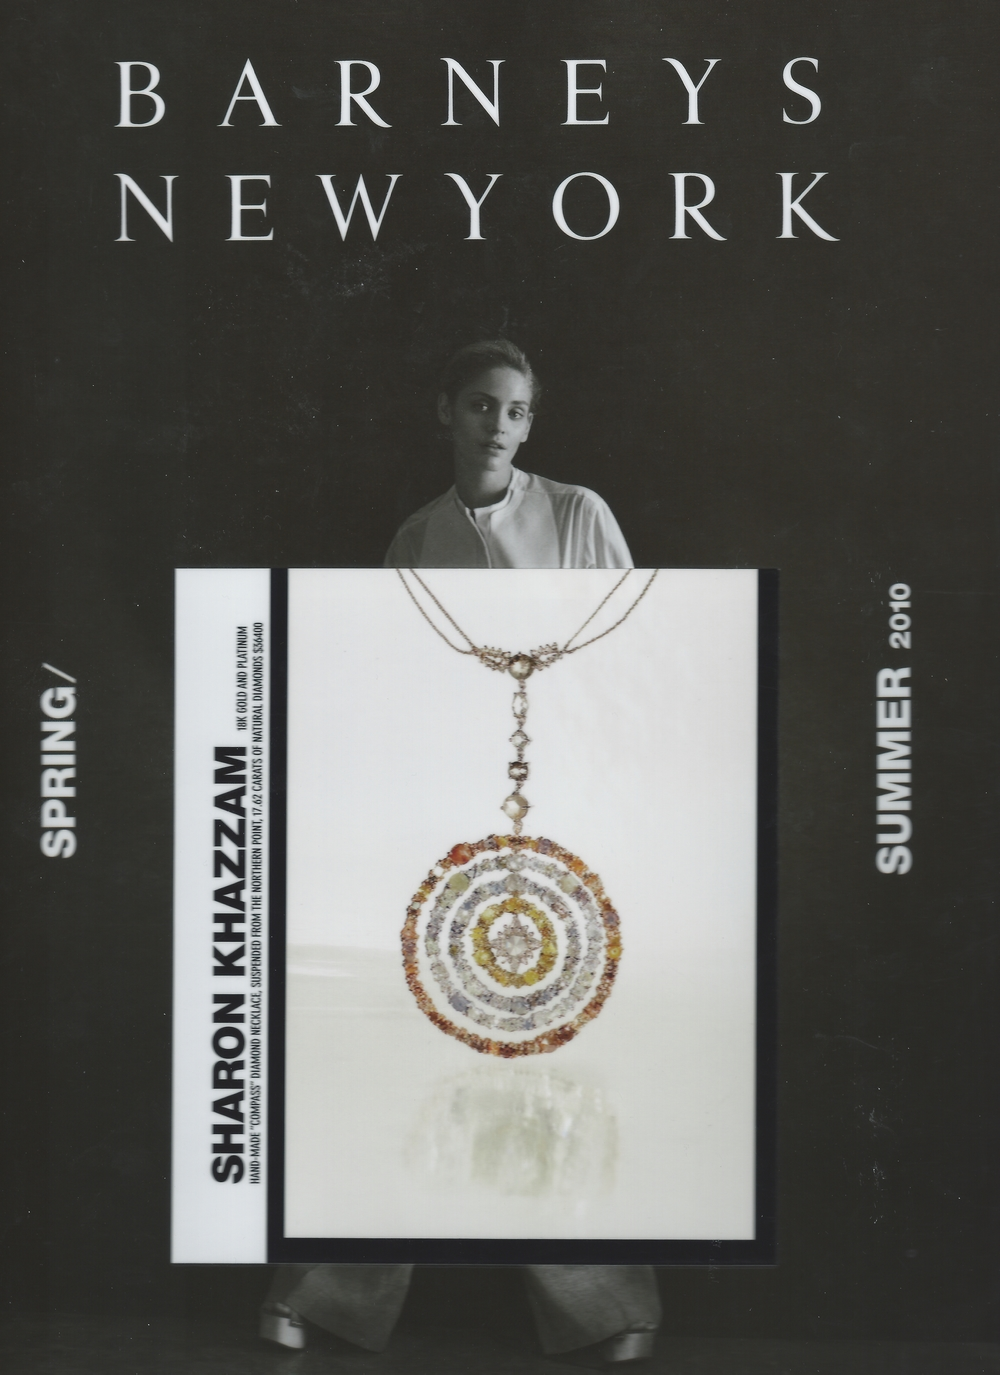 2010-Barneys Summer Mailer-Compass Necklace.jpg